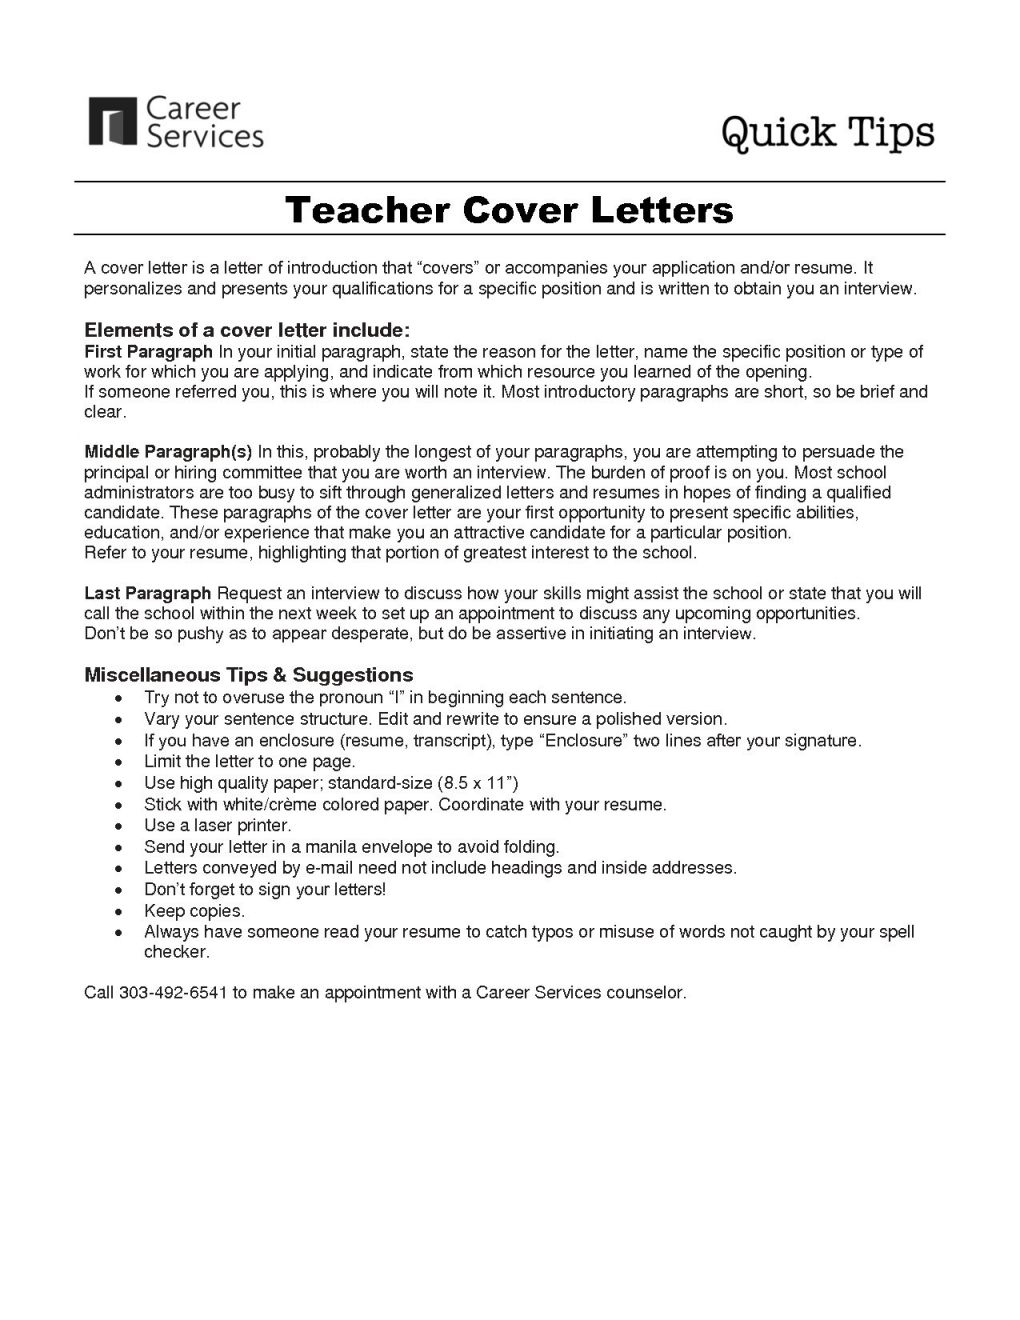 Rfp Cover Letter Template - Awesome Example Rfp Pt37 – Documentaries for Change